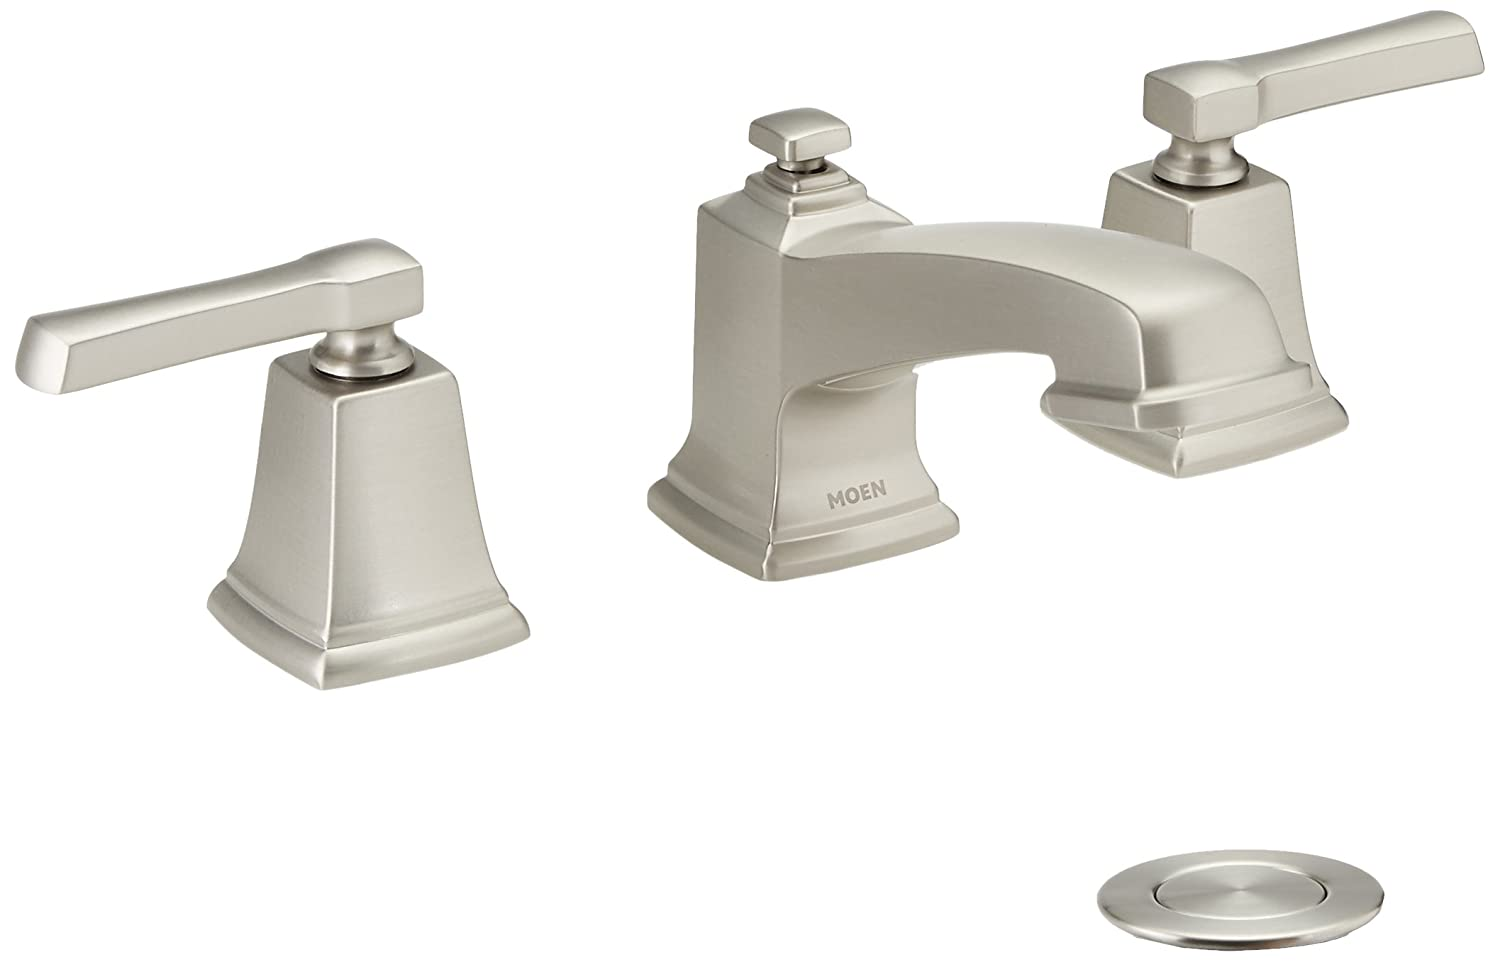 Astonishing Moen Ws84820Srn Boardwalk Two Handle Low Arc Bathroom Faucet Spot Resist Brushed Nickel Download Free Architecture Designs Grimeyleaguecom